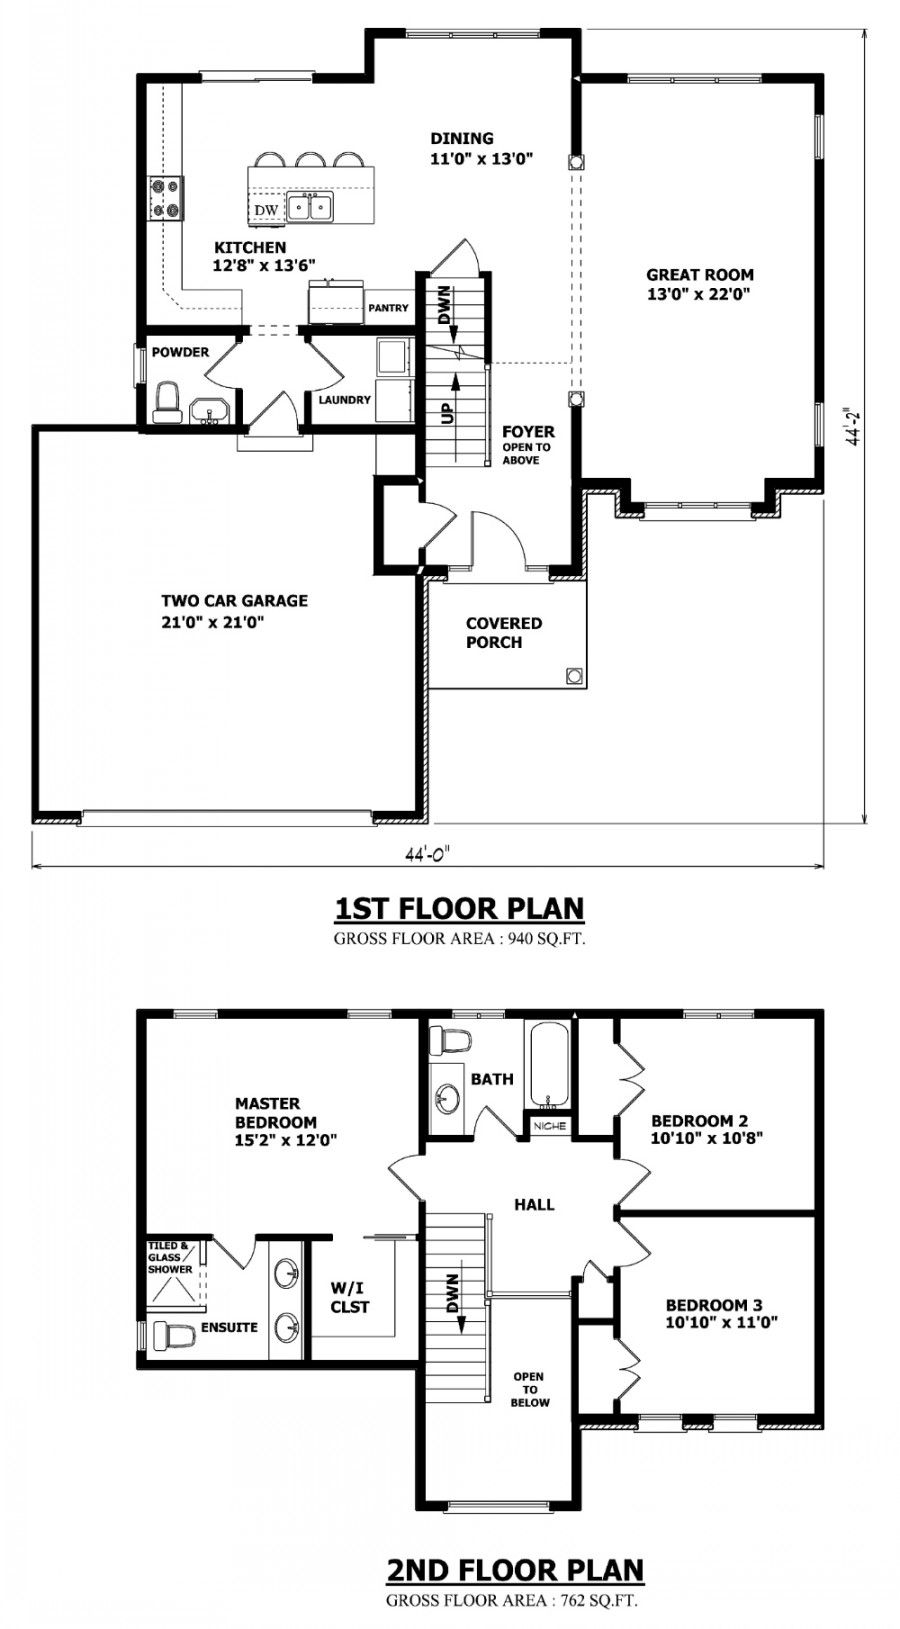 Home designs custom house plans stock house plans amp 2 storey house plans with attached garage